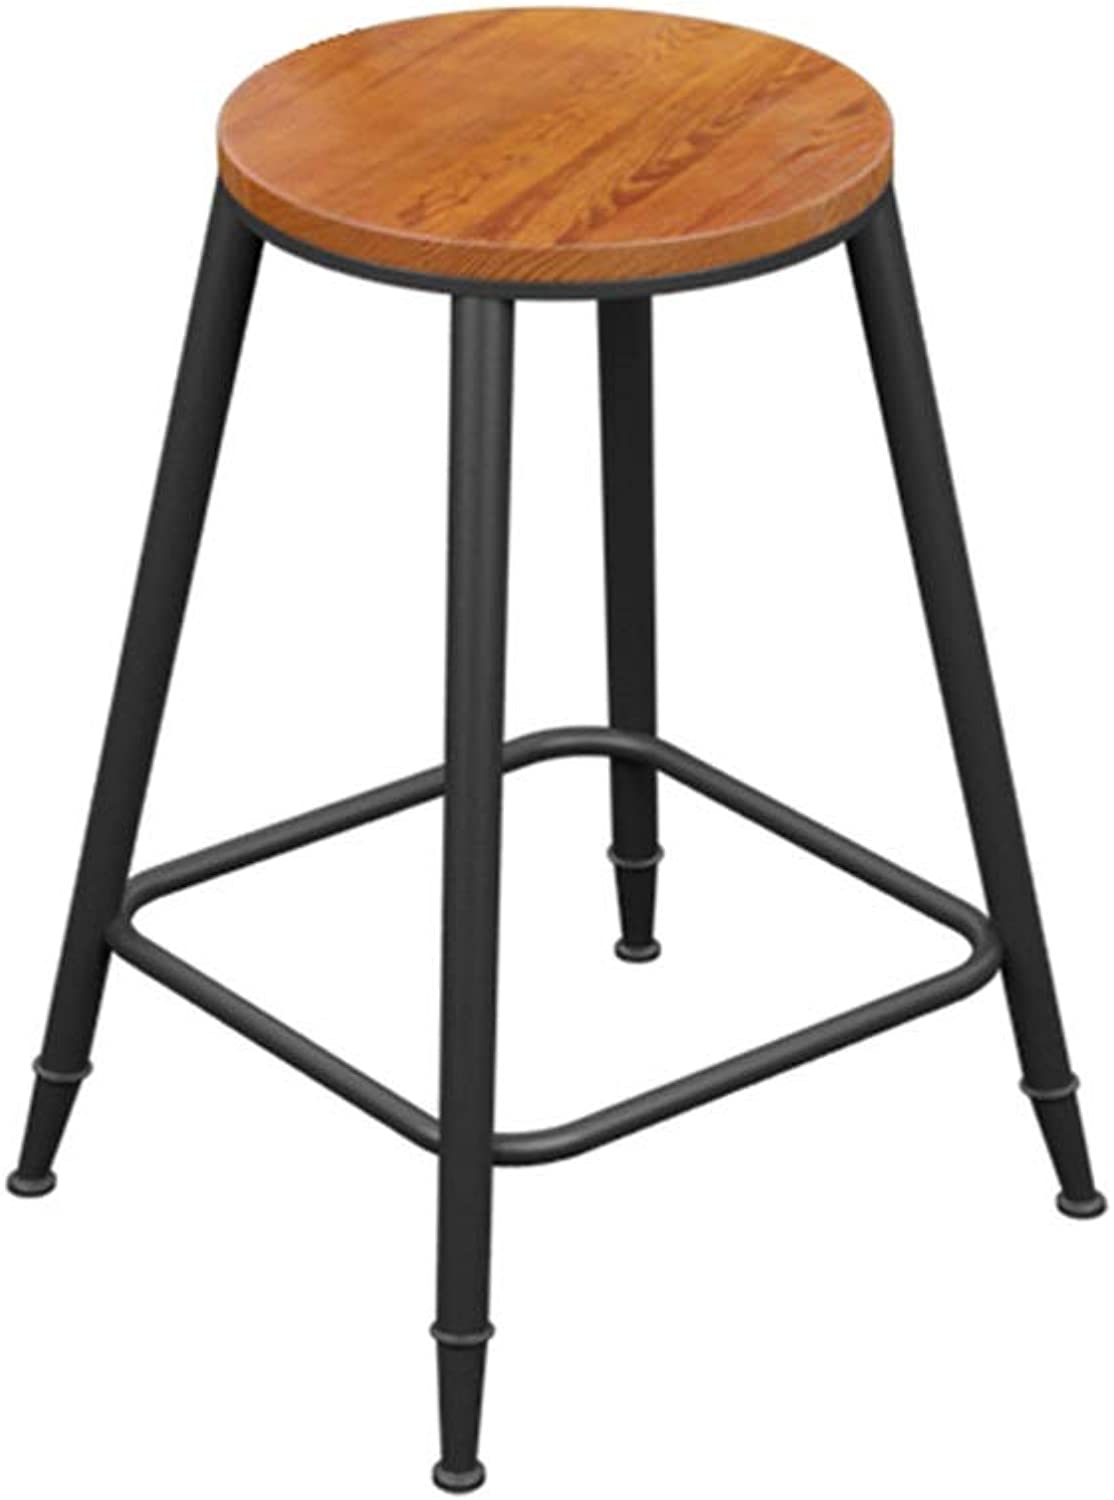 Round Barstool Iron Breakfast Dining Stool for Kitchen Bar Counter Home Commercial Chair High Stool with Wooden Seat LOFT Industrial Style (Size   Height 60cm)